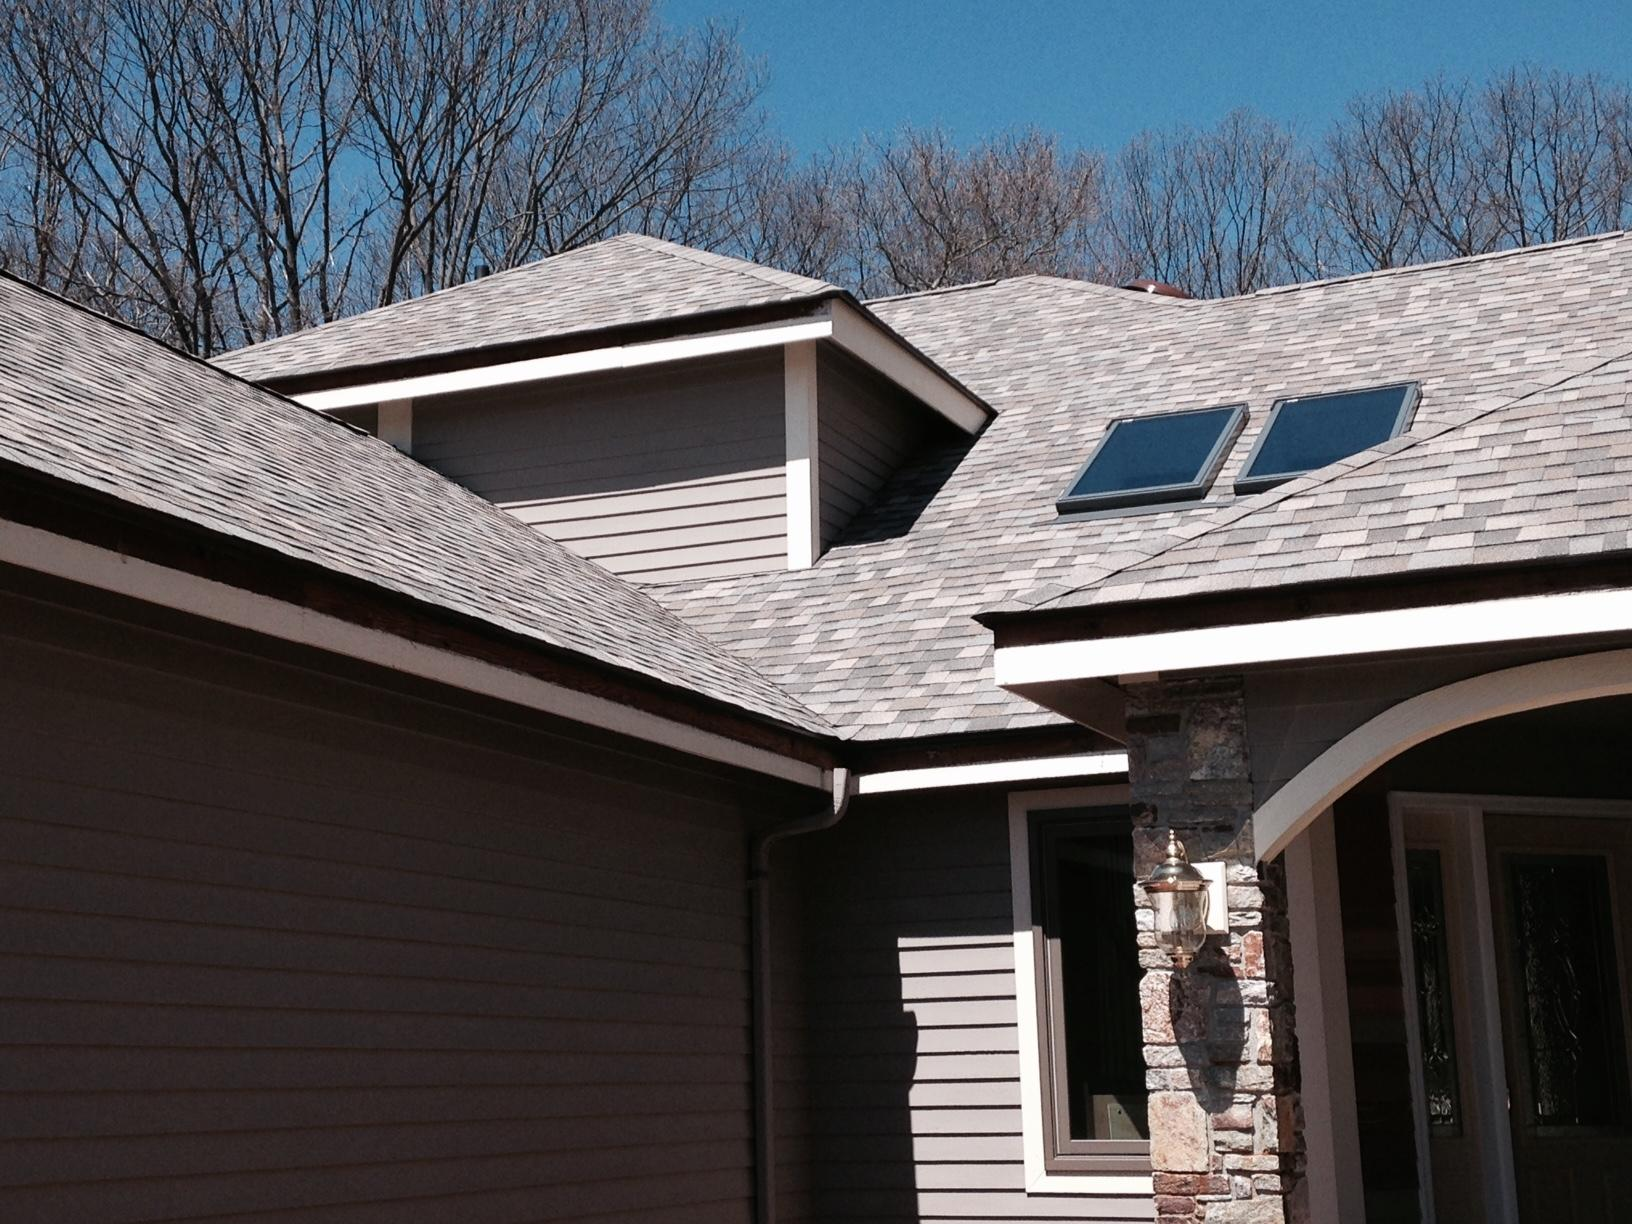 Home and Shed Roof Replacement in Prospect, CT - After Photo